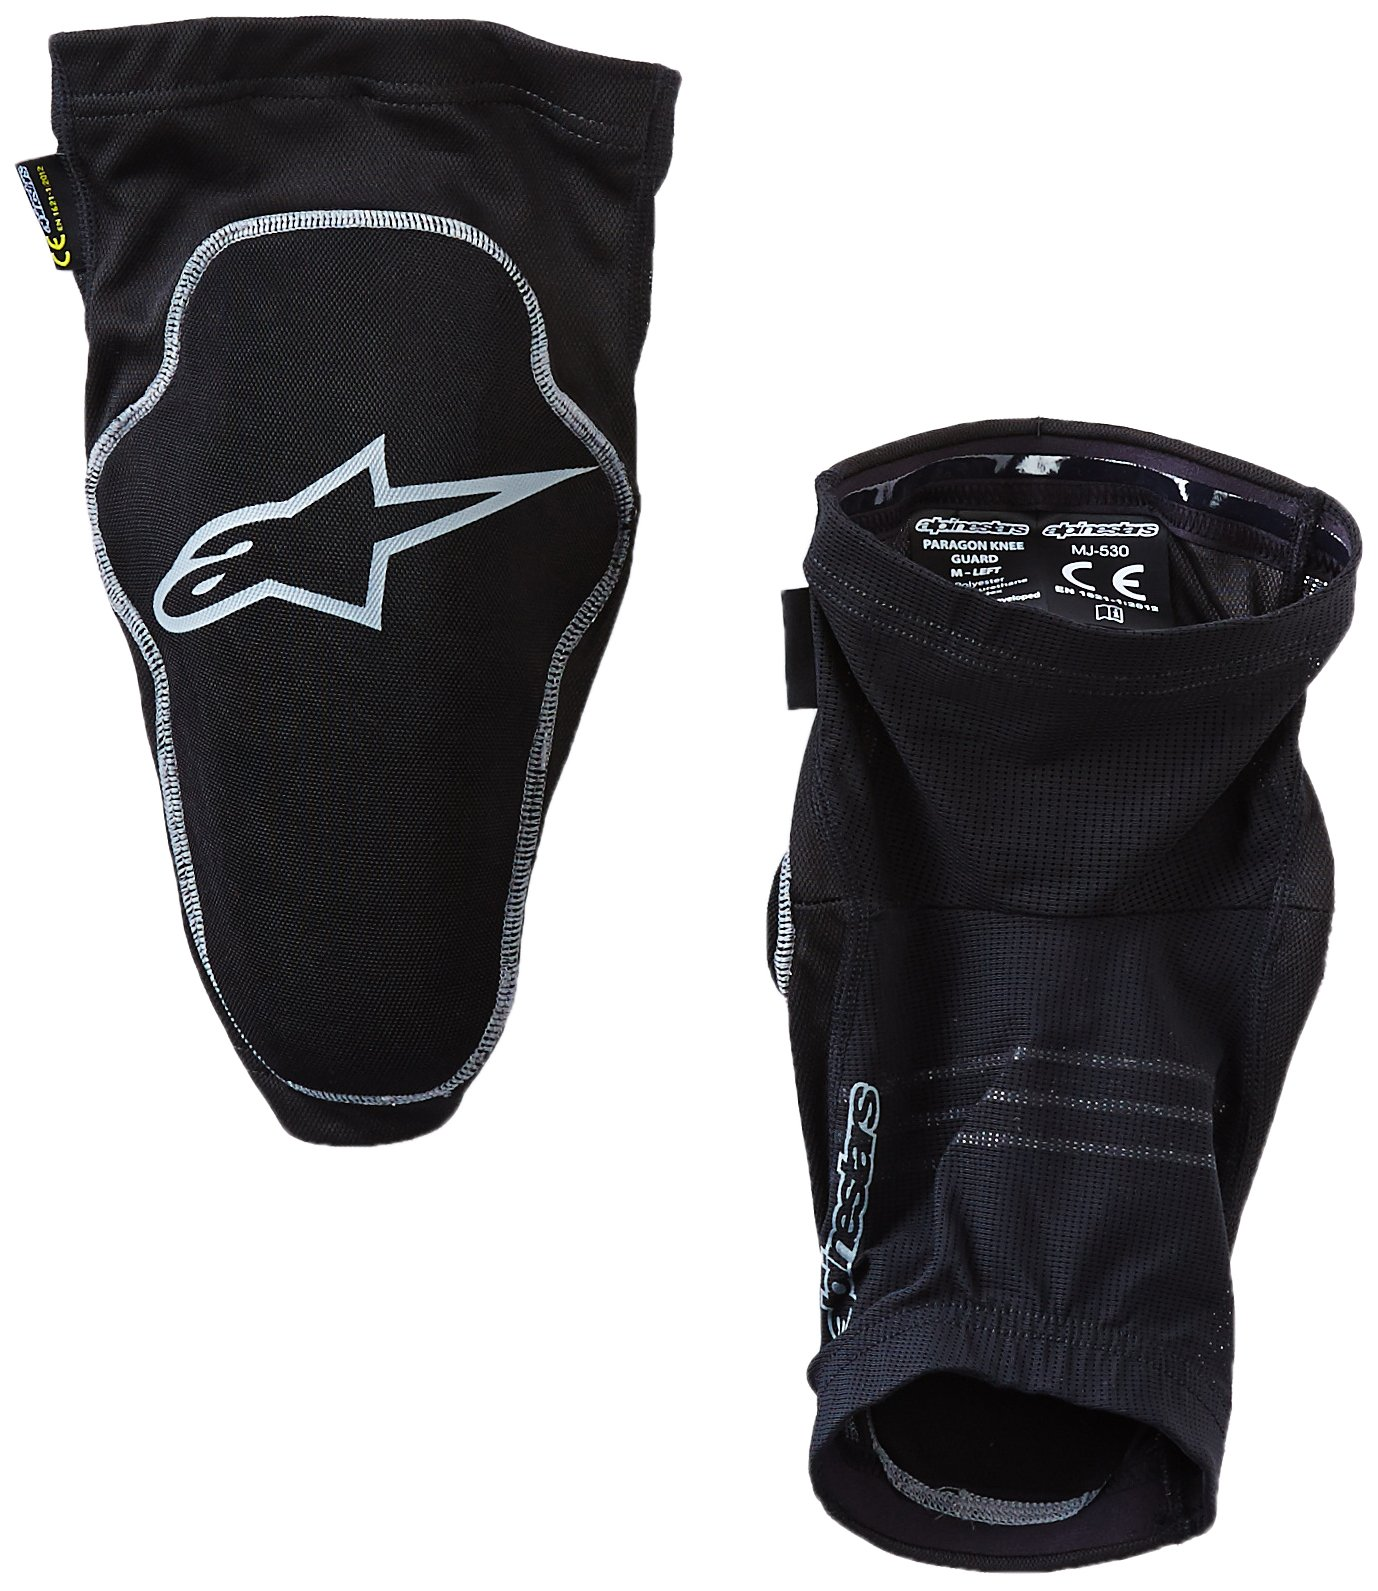 Alpinestars Paragon Knee Guard, Black, Large by Alpinestars